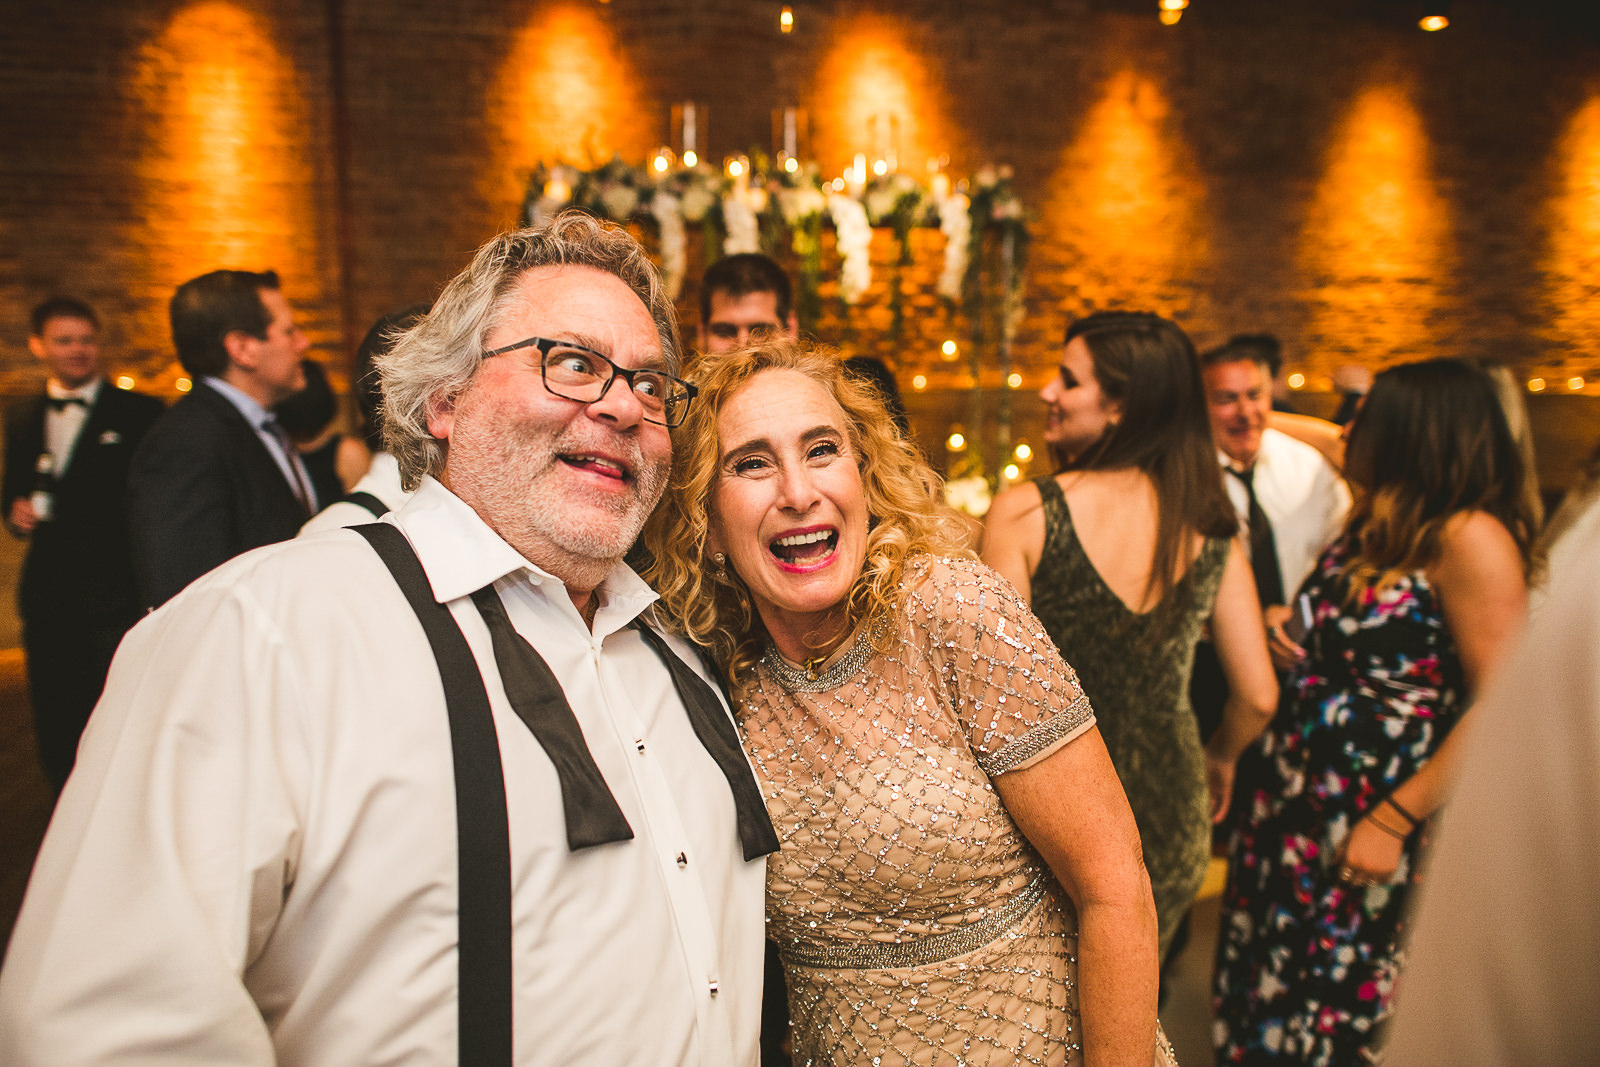 72 fun reception photos at gallery 1028 - Chicago Wedding Photography at Gallery 1028 // Courtnie + David